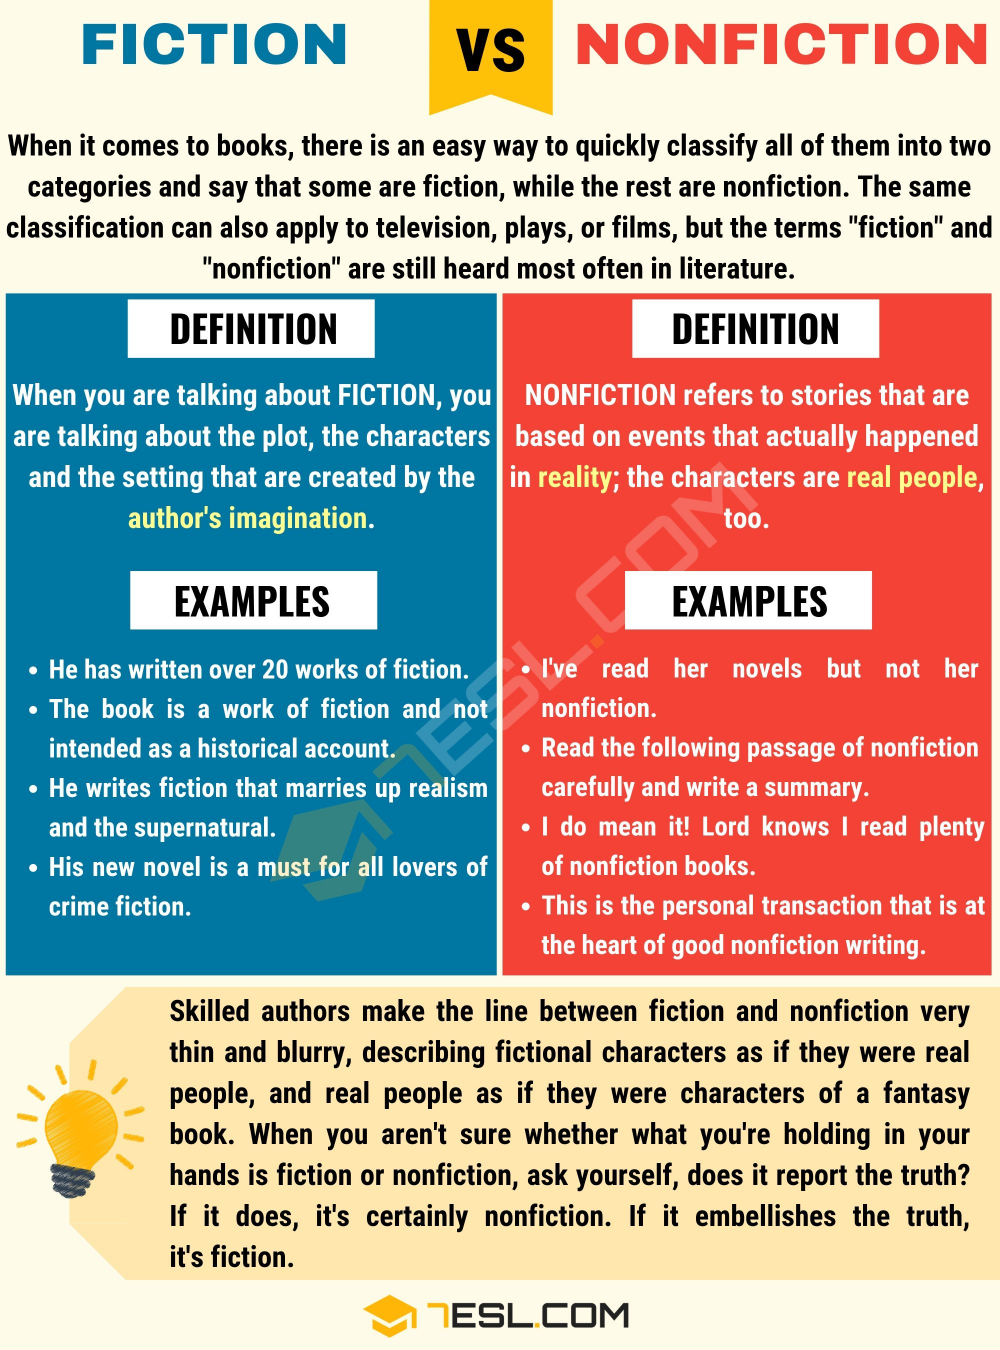 Fiction Vs Nonfiction Useful Difference Between Fiction And Nonfiction In 2020 Fiction Vs Nonfiction English Vocabulary Fiction And Nonfiction